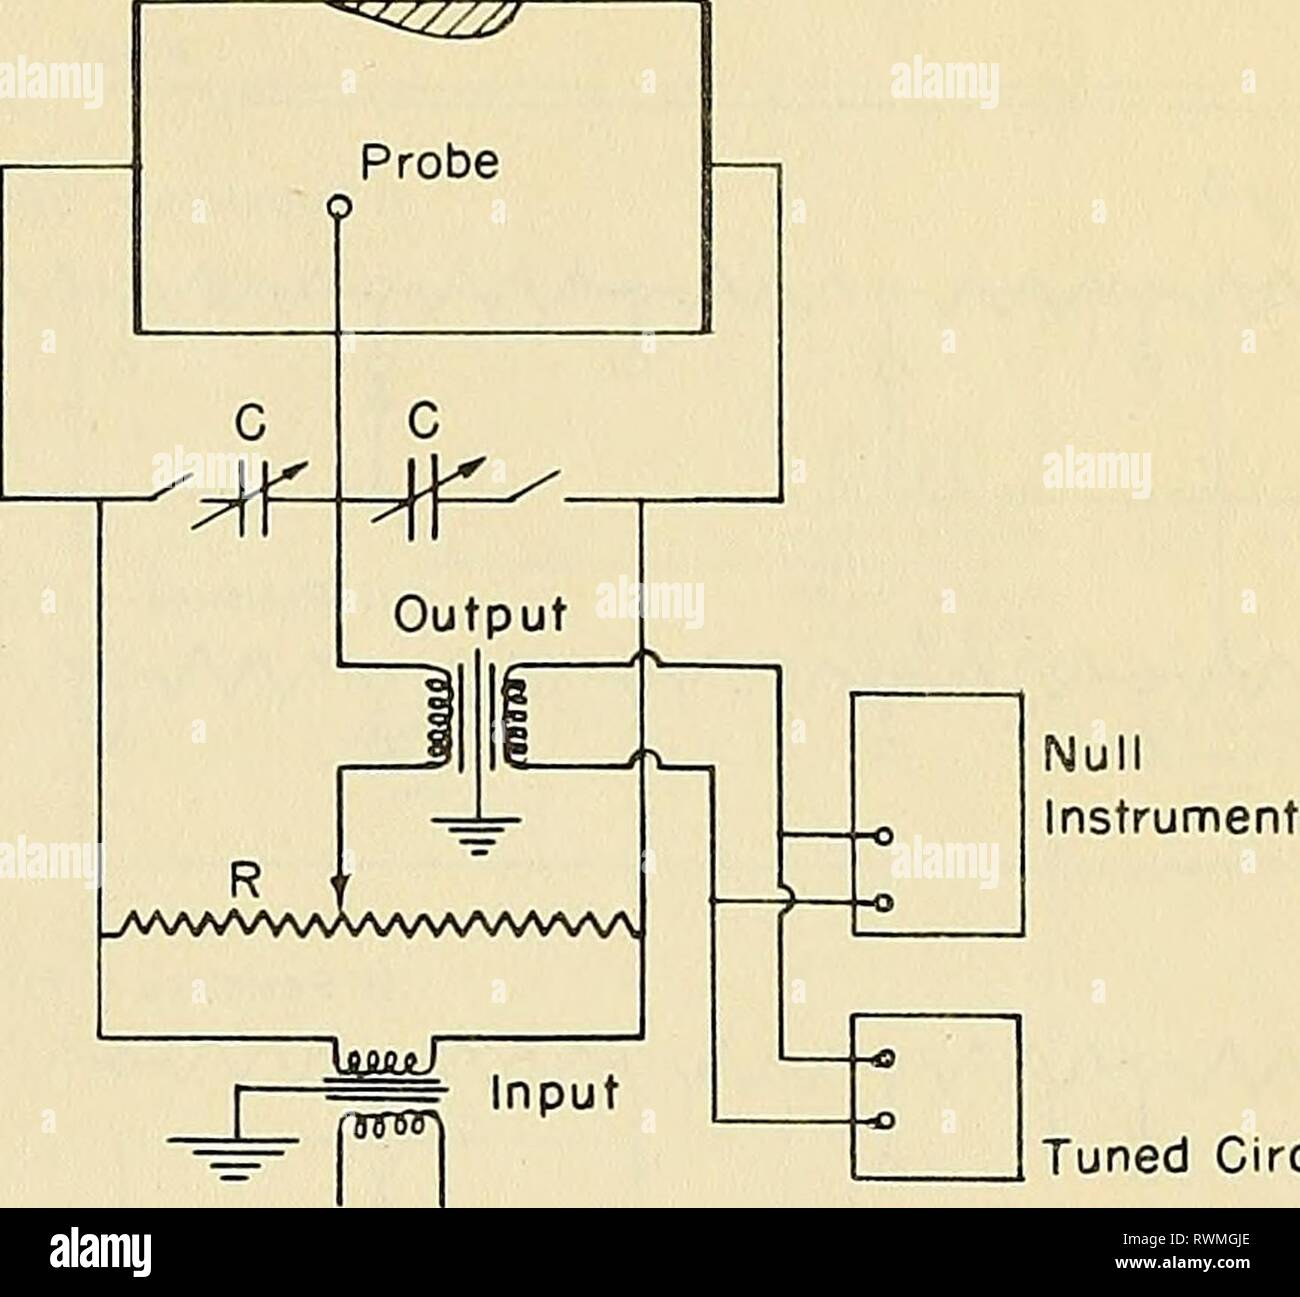 an electrolytic tank developed for an electrolytic tank developed for  obtaining velocity and pressure distributions about